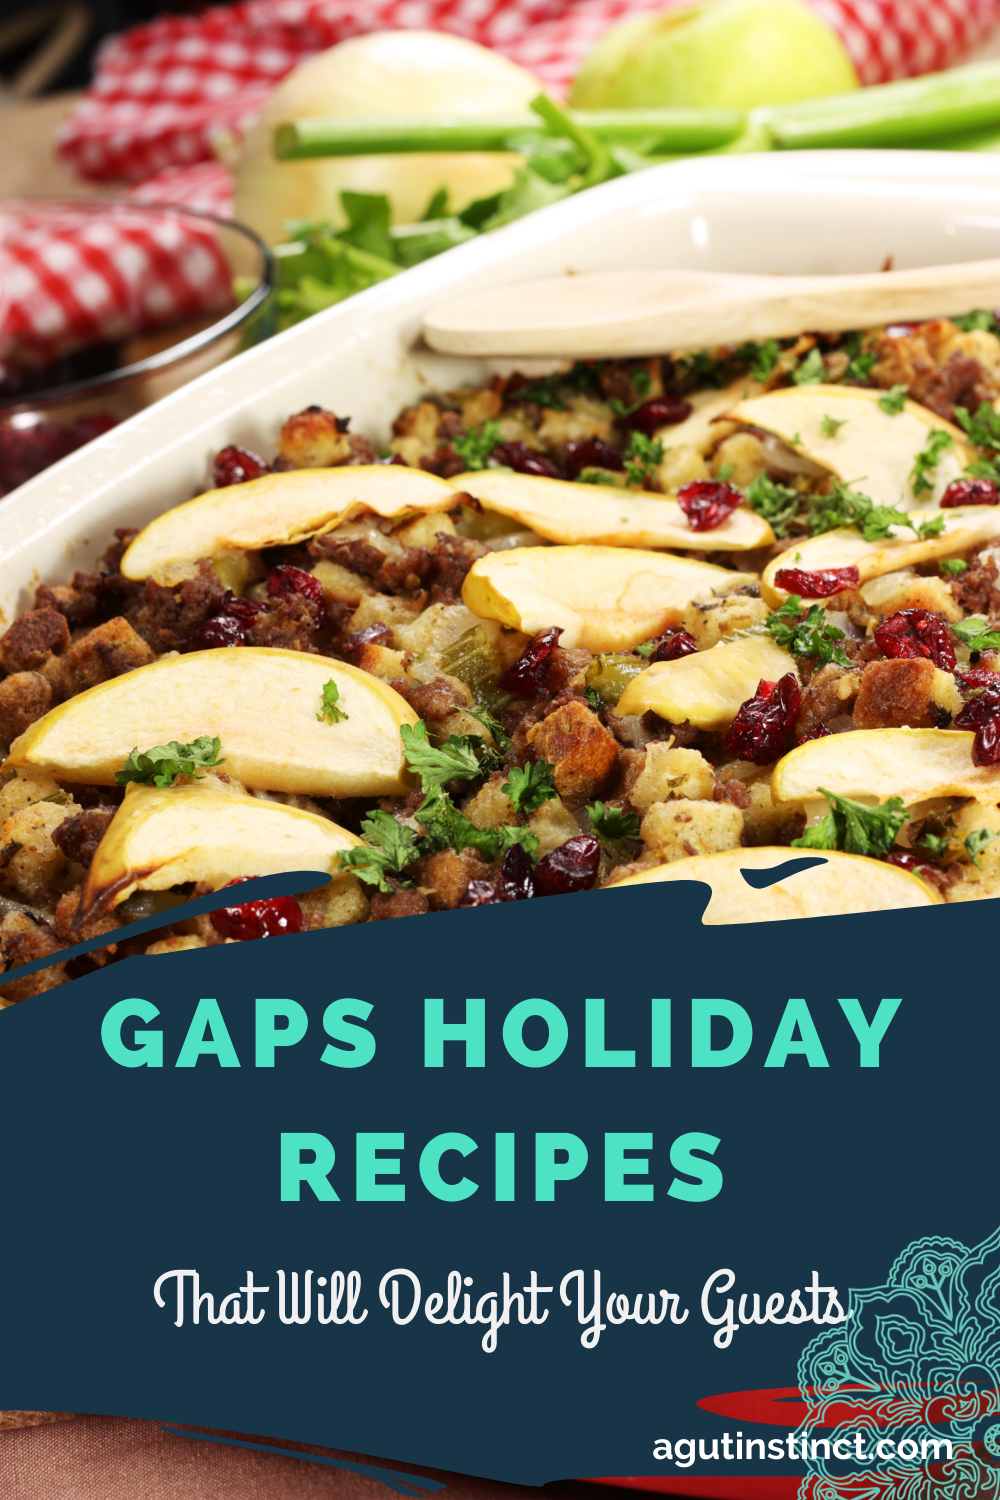 """The words """"GAPS Holiday Recipes That Will Delight Your Guests"""" is written across a stripe of blue color overlaid on top of a photo of a delicious and healthy-looking meal in a casserole dish and topped with cranberries and slices of apple."""